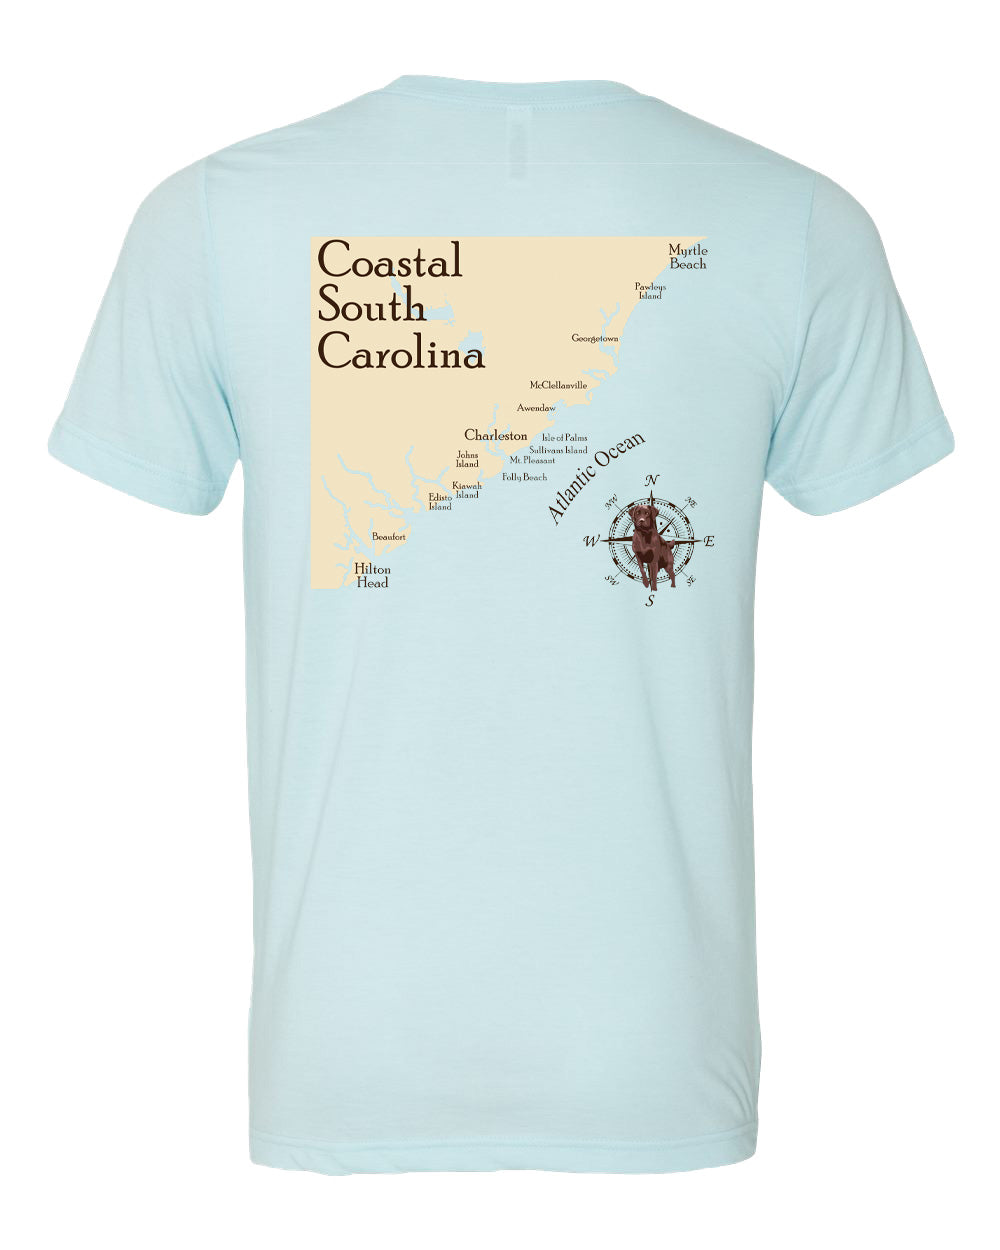 South Carolina Coastline Short Sleeve T-shirt